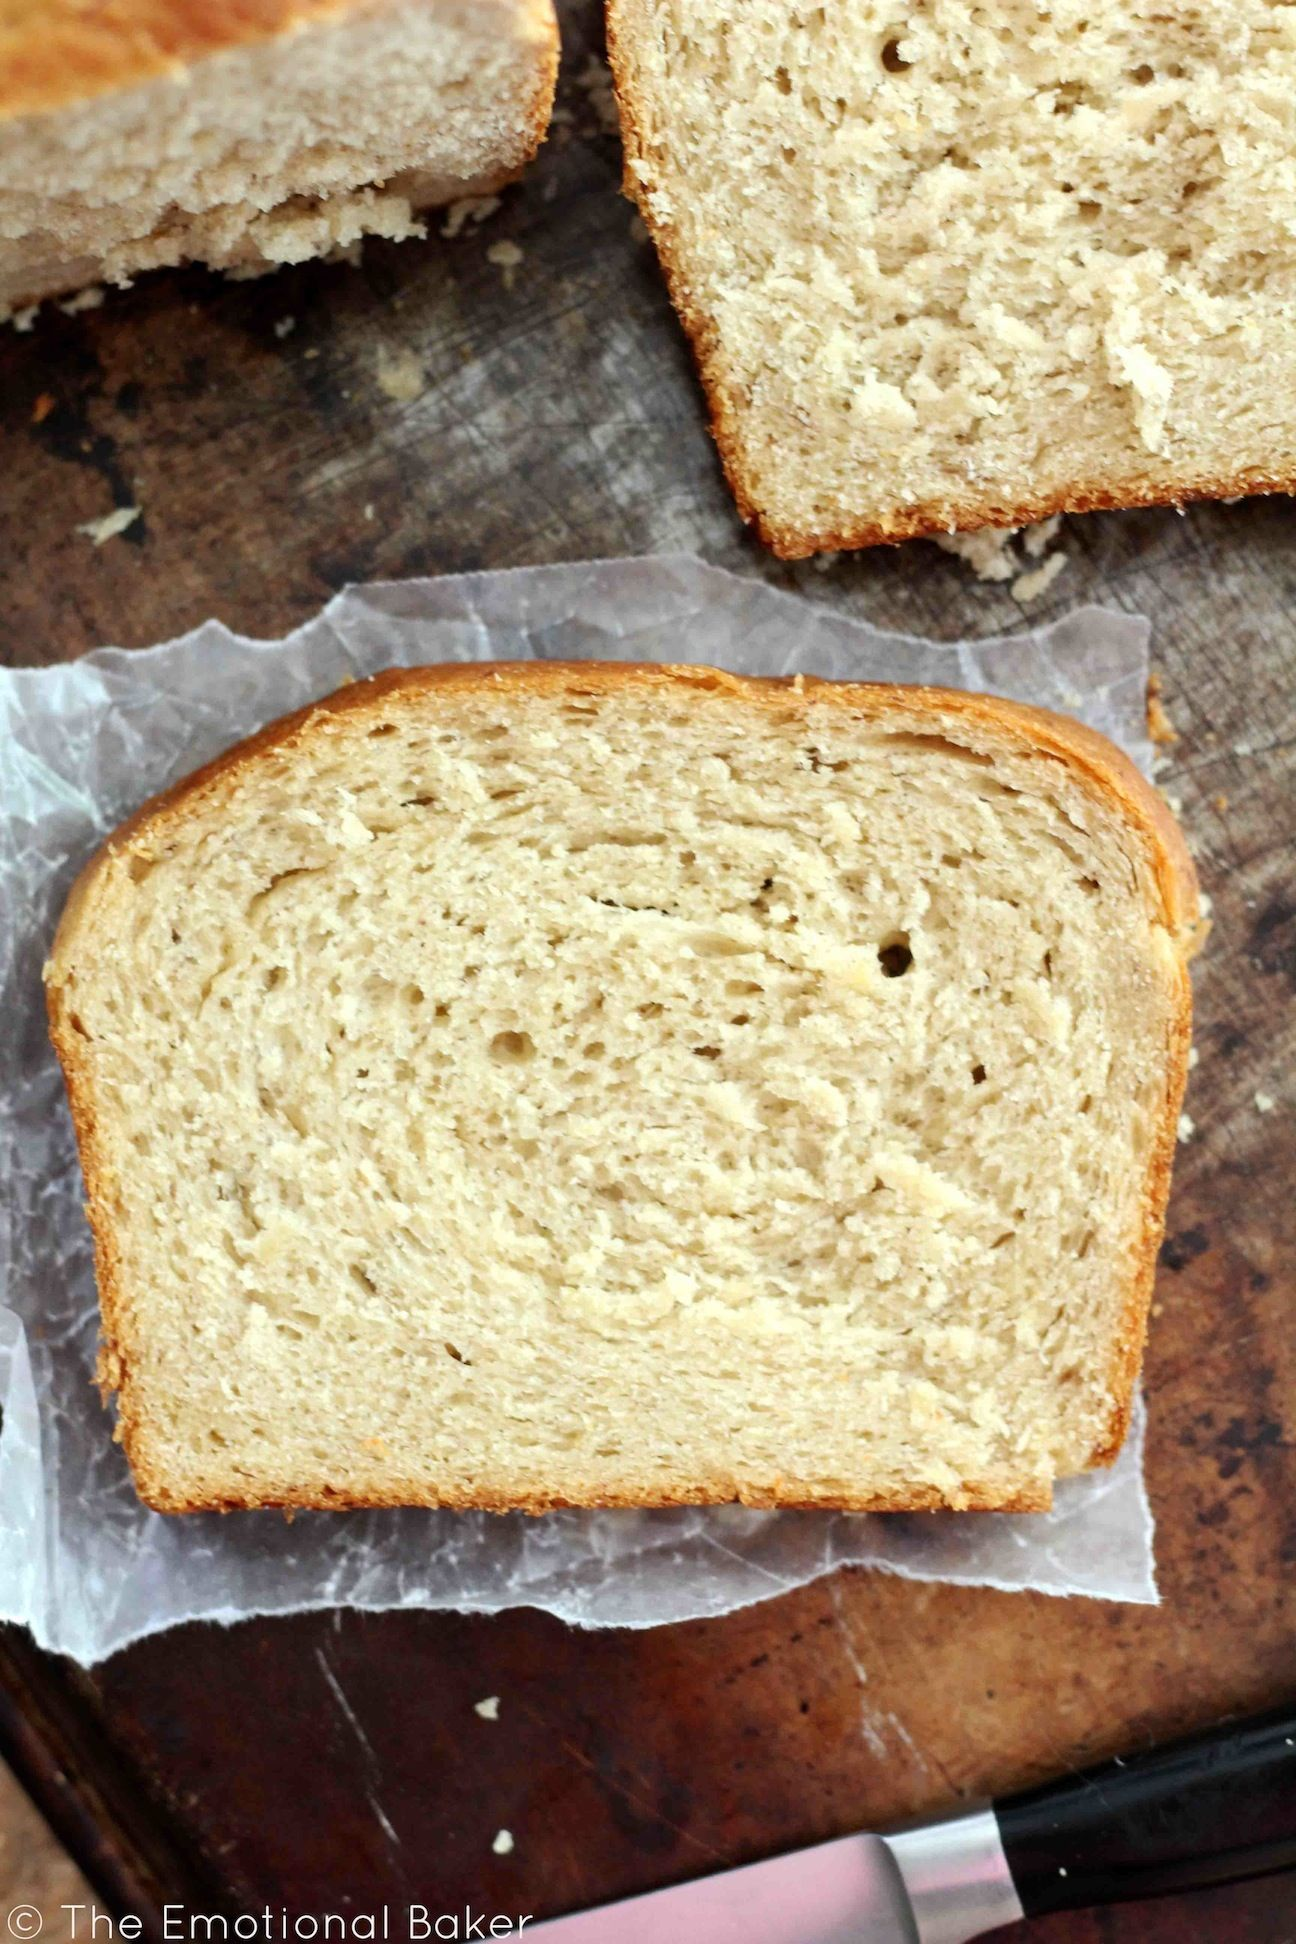 A yeasted bread filled with banana flavor and enhanced with cashew butter. This bread is soft and perfect for sandwiches.